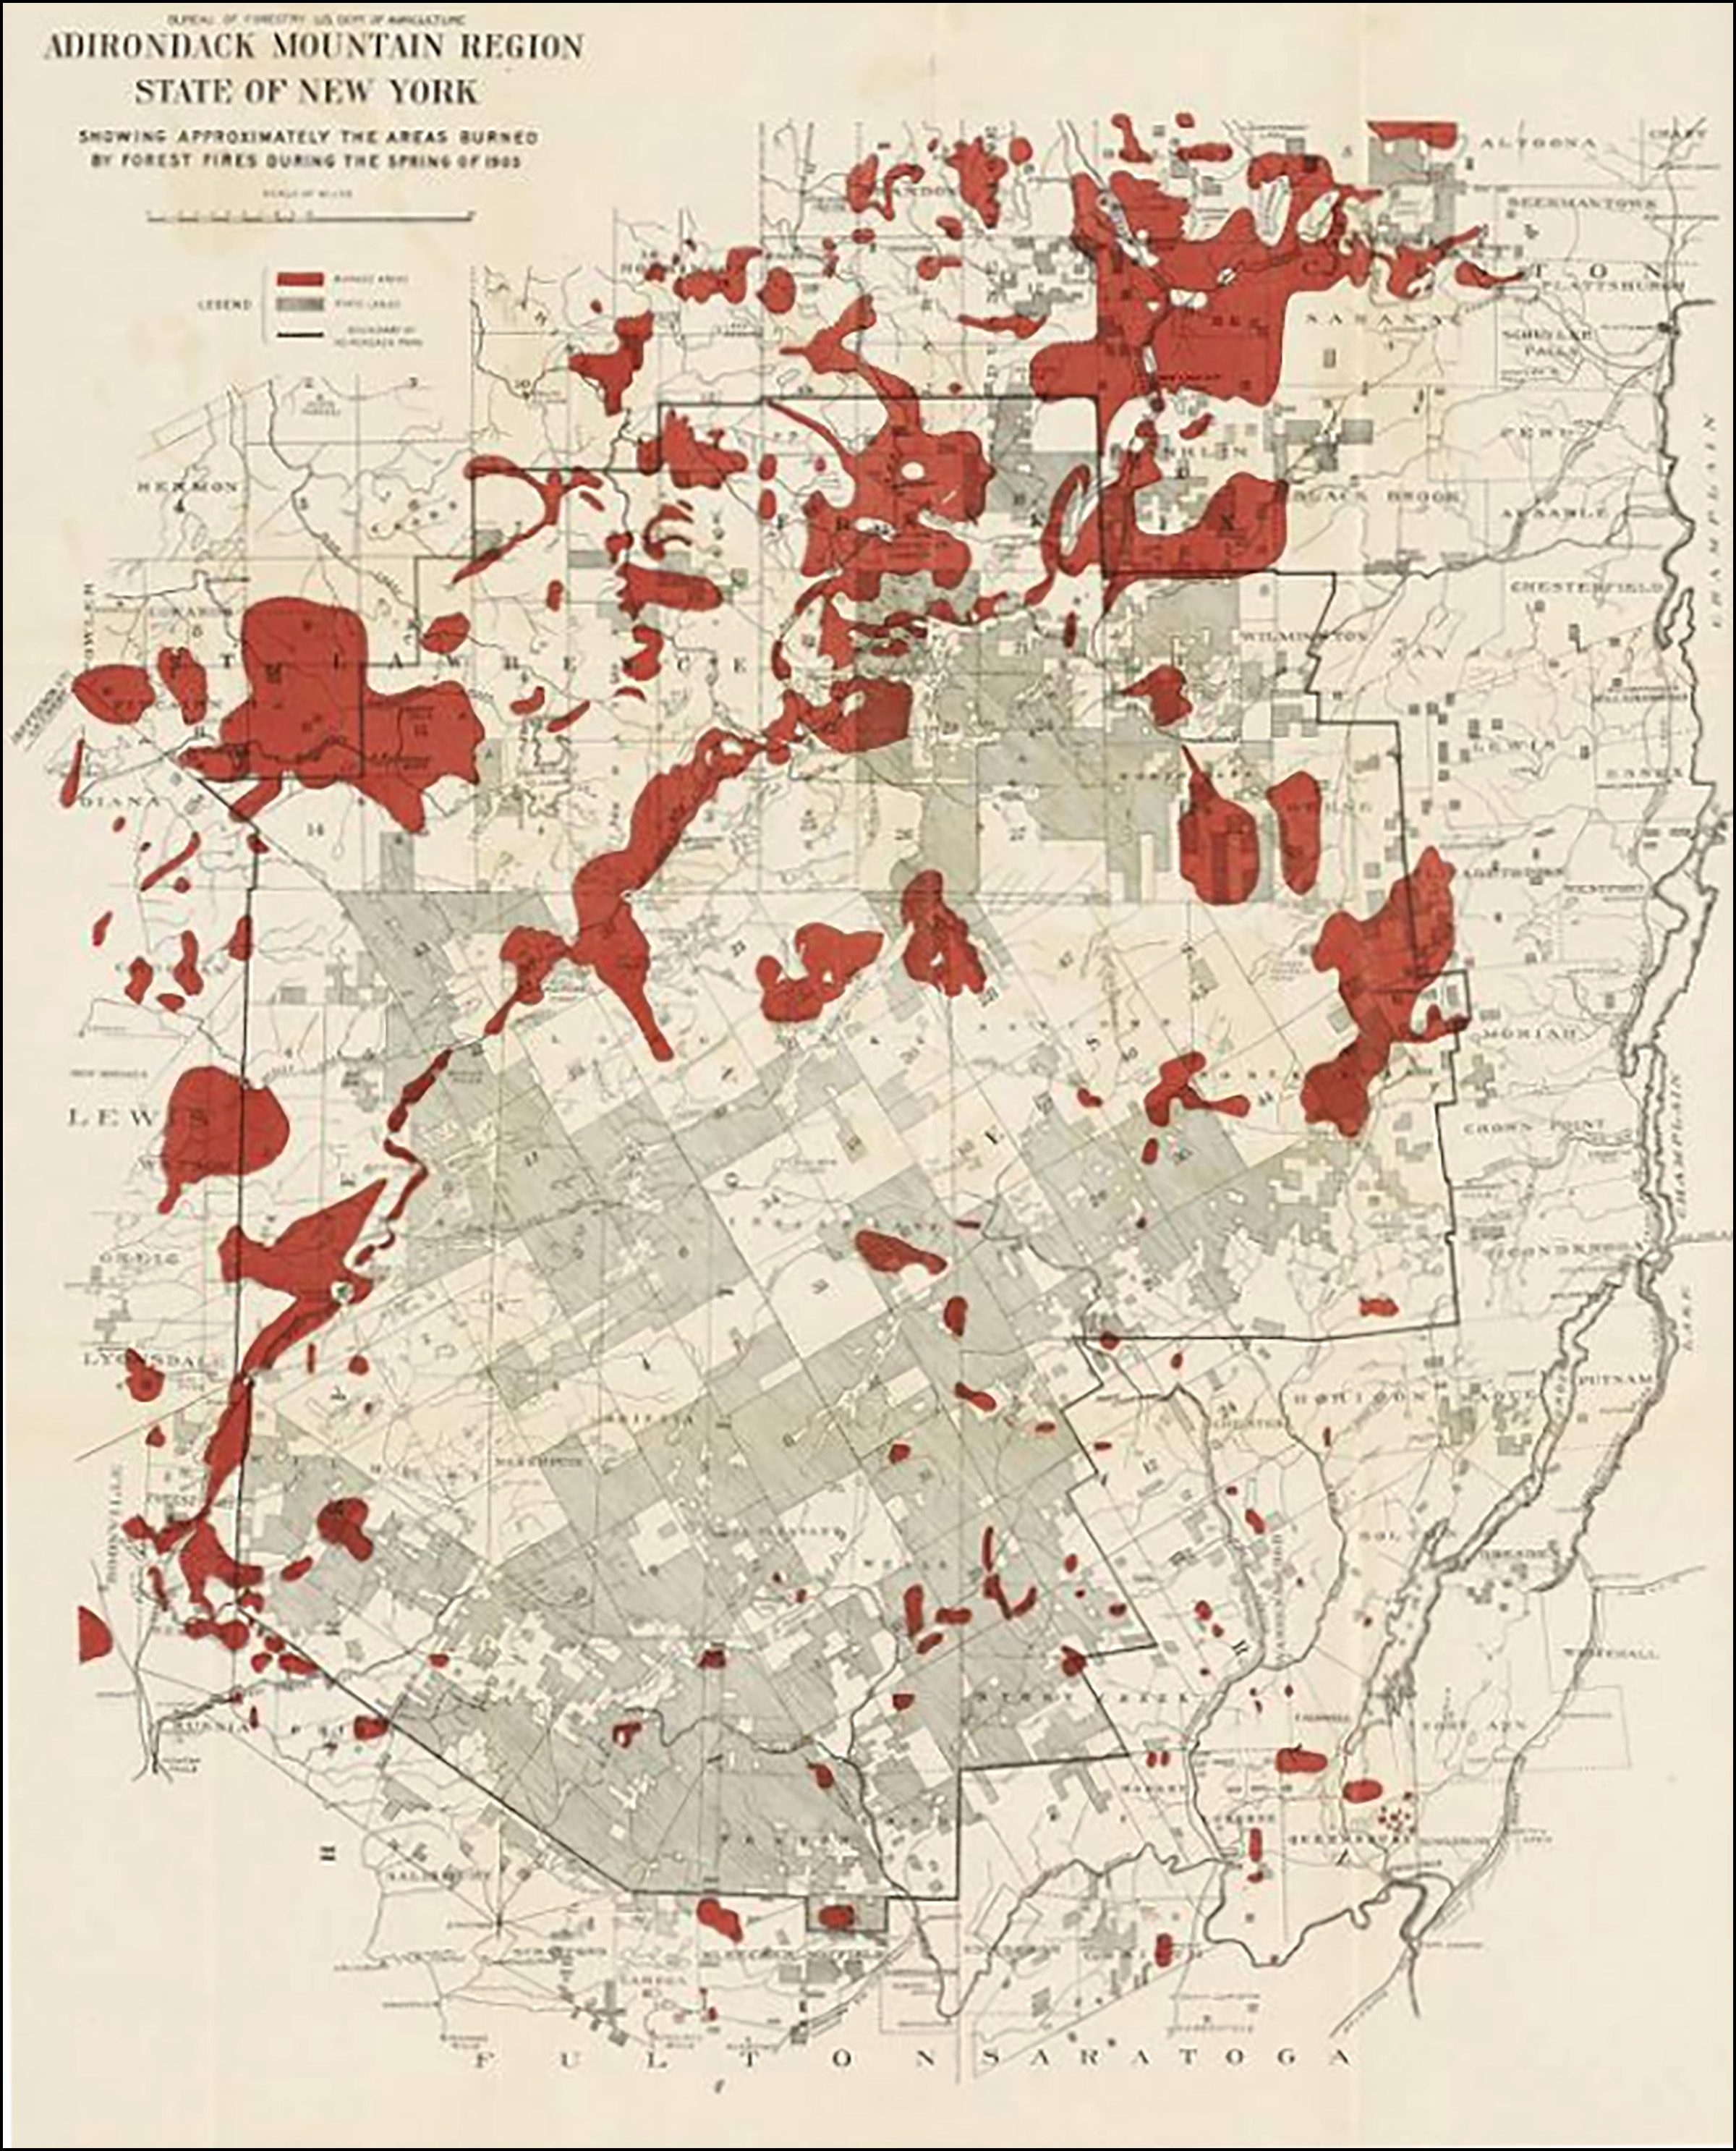 Map of the 1903 Adirondack fires. Herman Suter. Forest Fires in the Adirondacks, 1904.